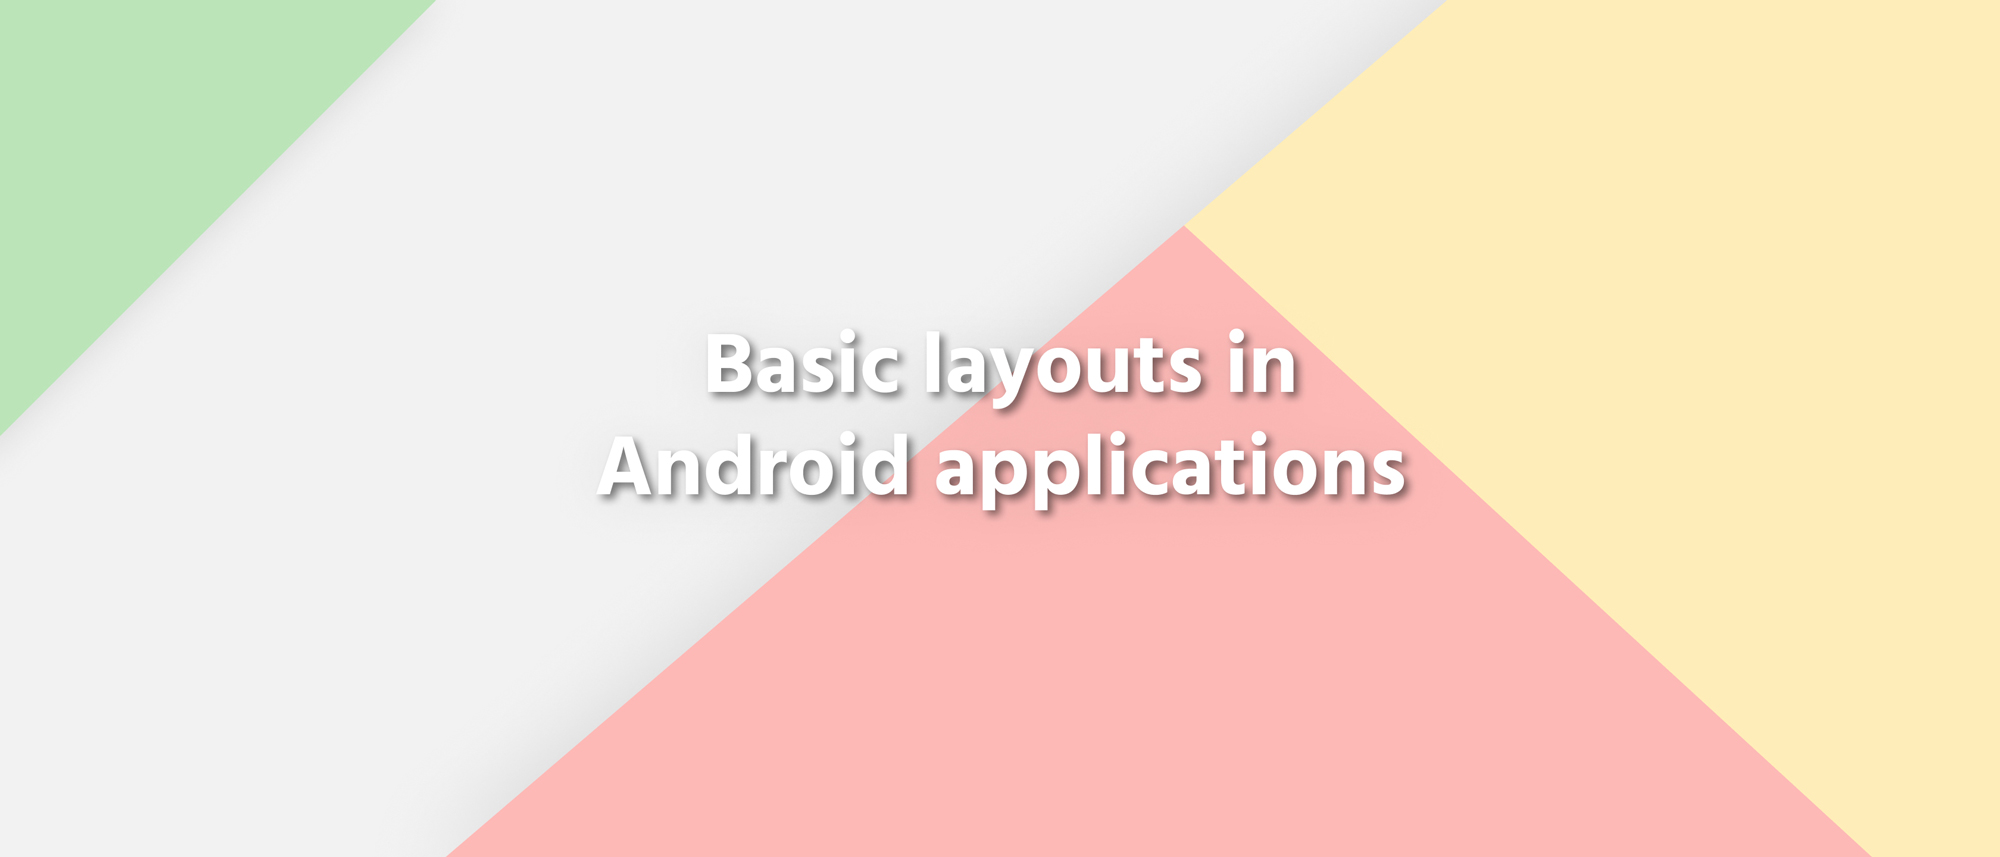 Basic layouts in Android applications